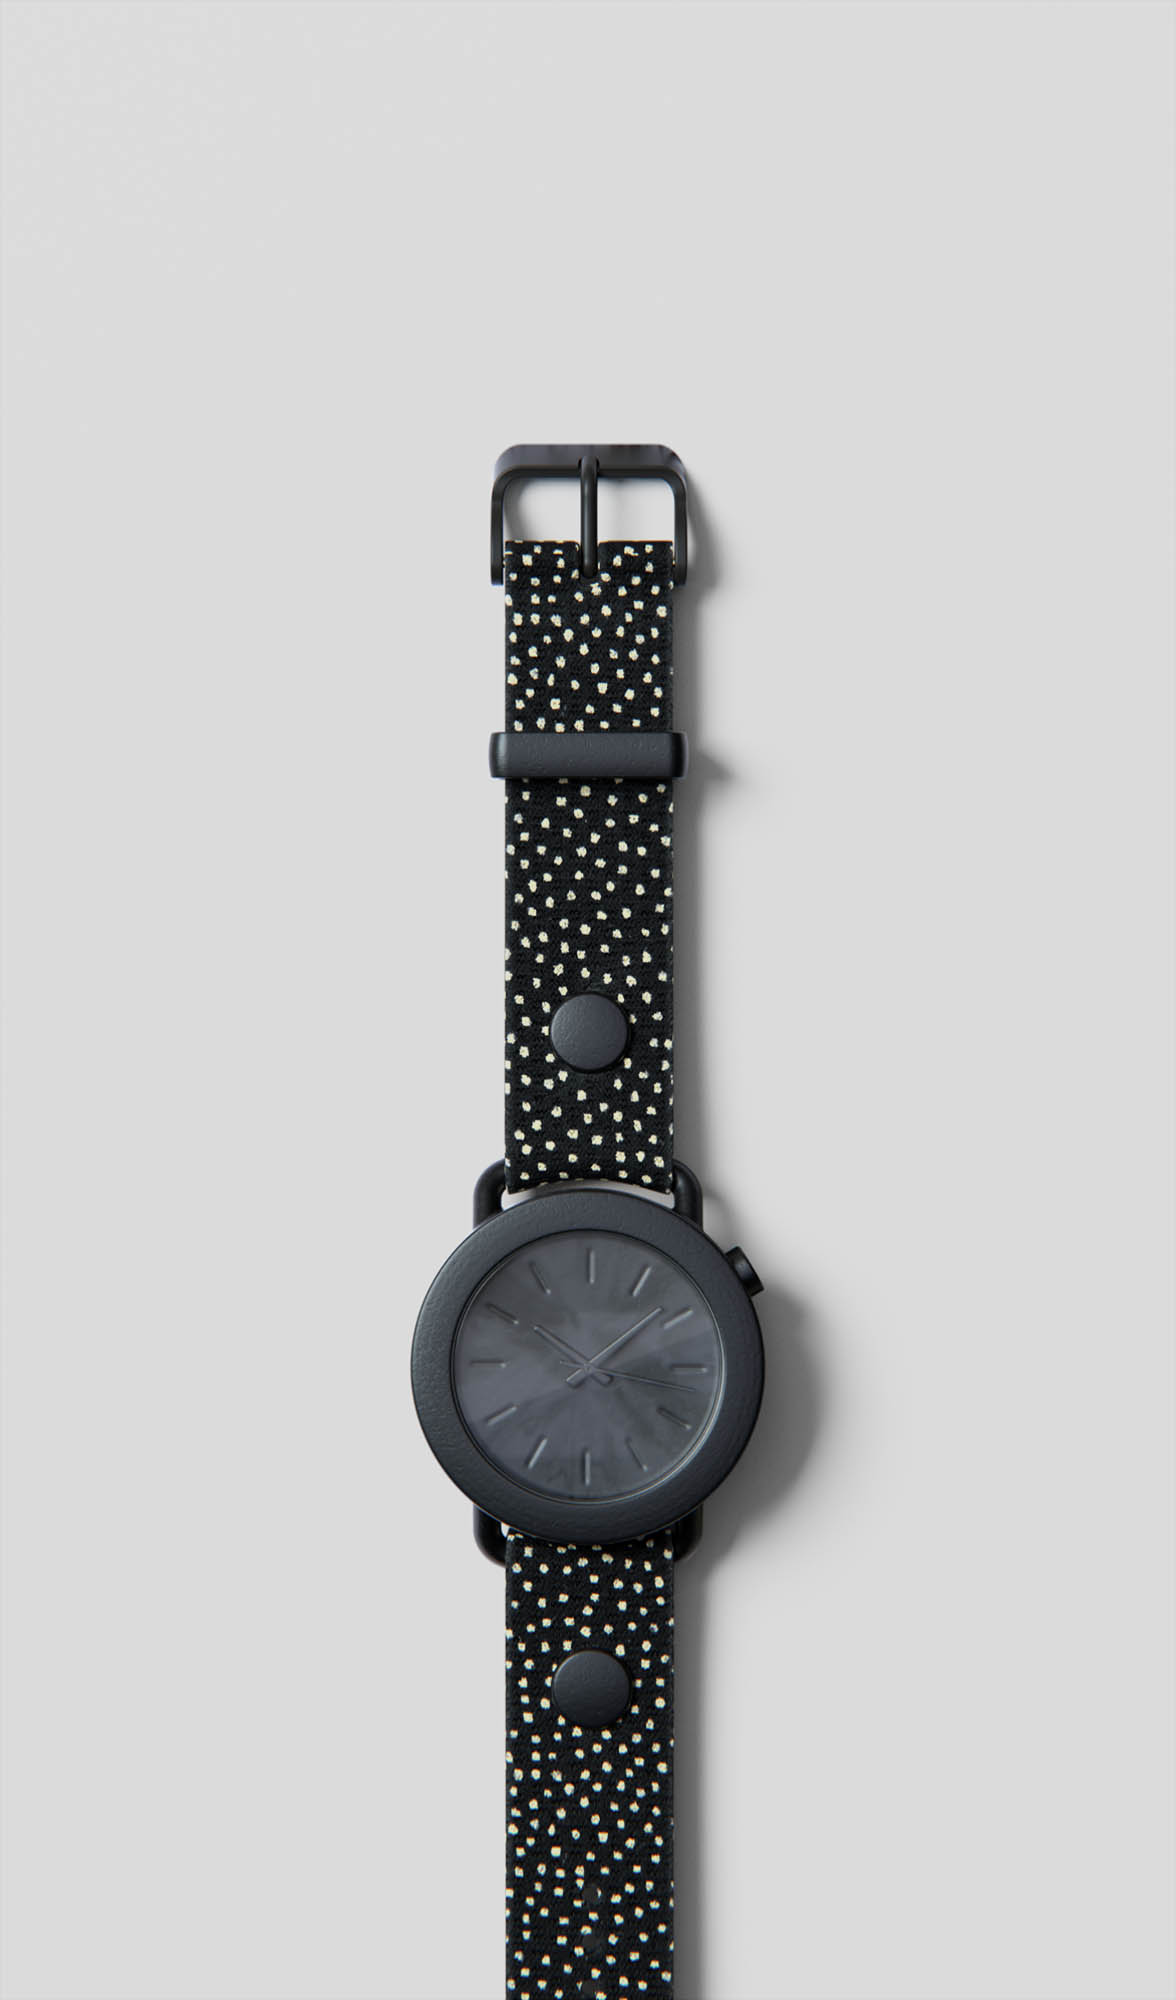 Andreas Bhend Industrial Design Studio NUGGET WATCH -small